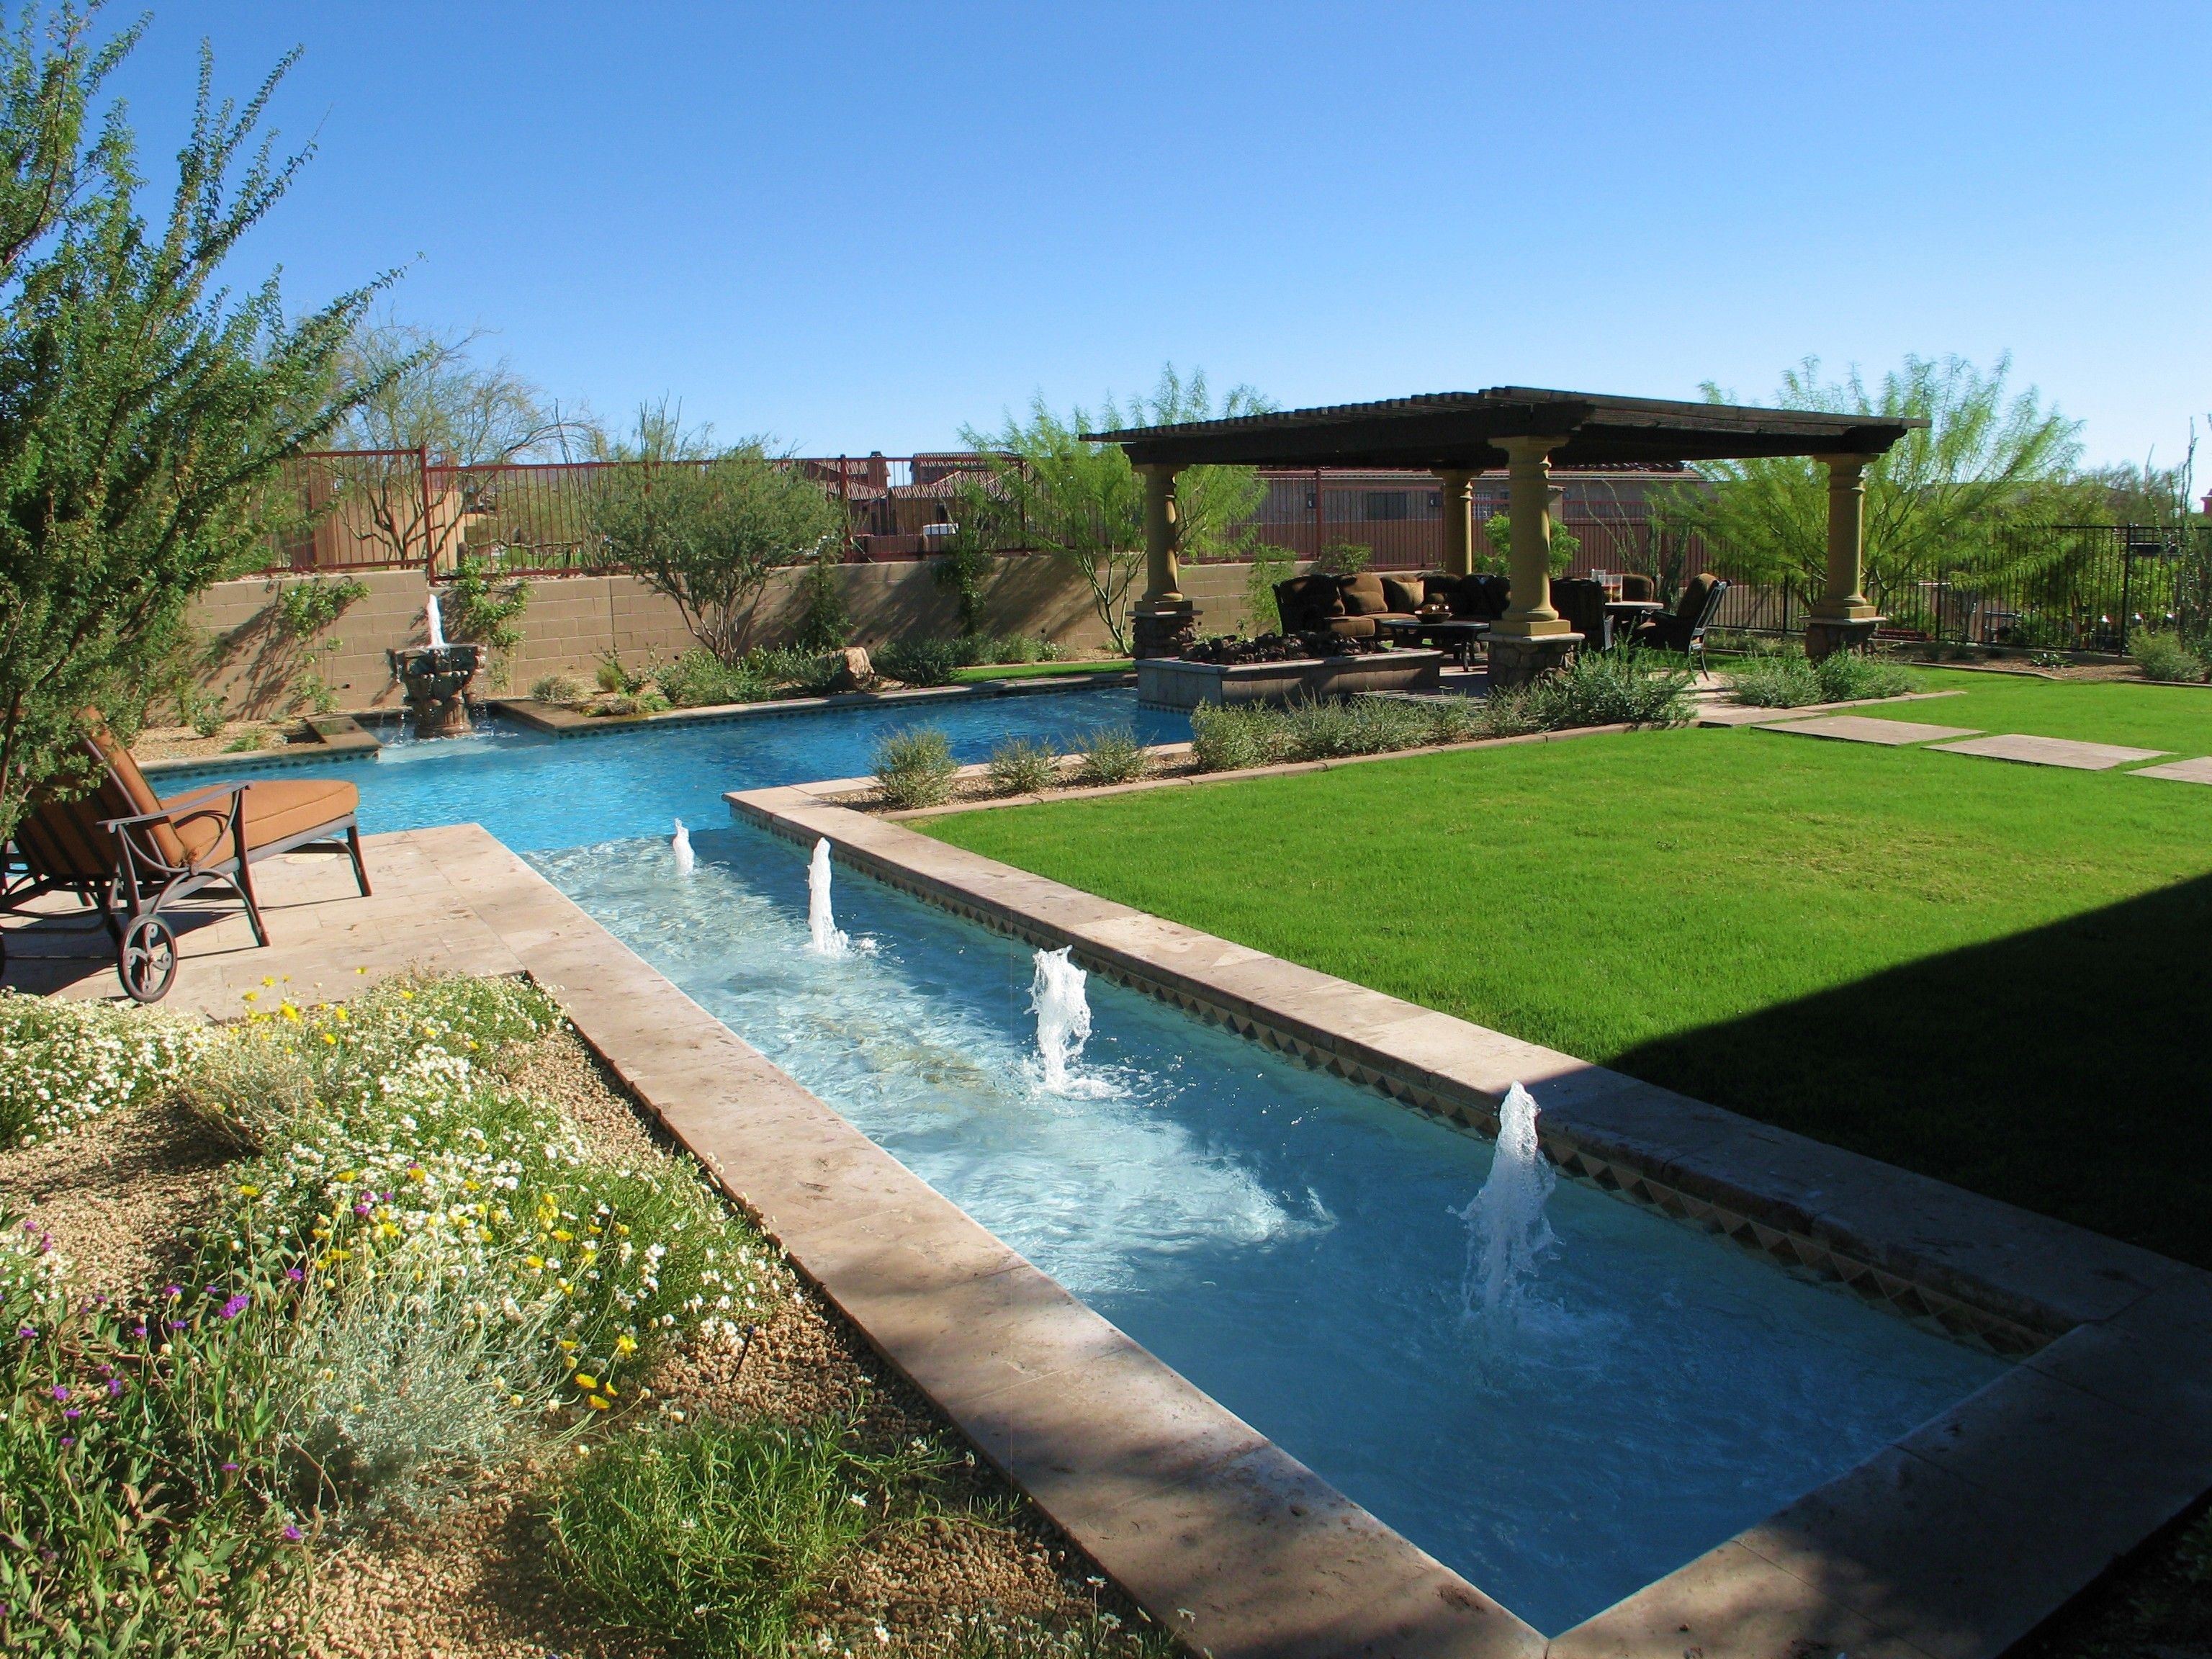 Explore Small Backyard Pools And More!